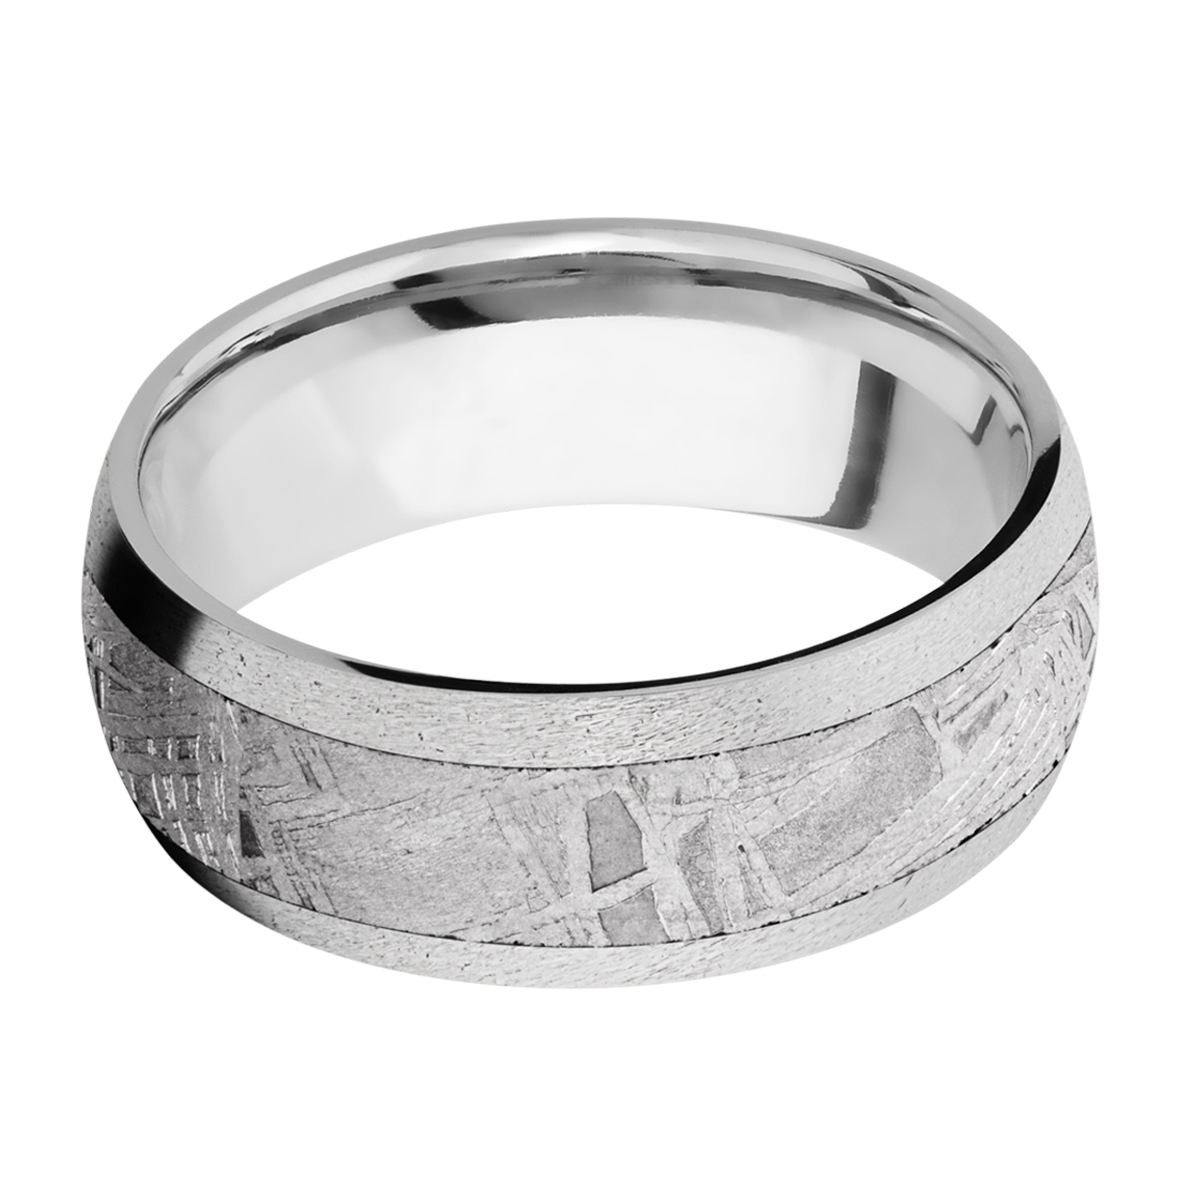 Lashbrook CC8D15/Meteorite Cobalt Chrome Wedding Ring or Band Alternative View 7